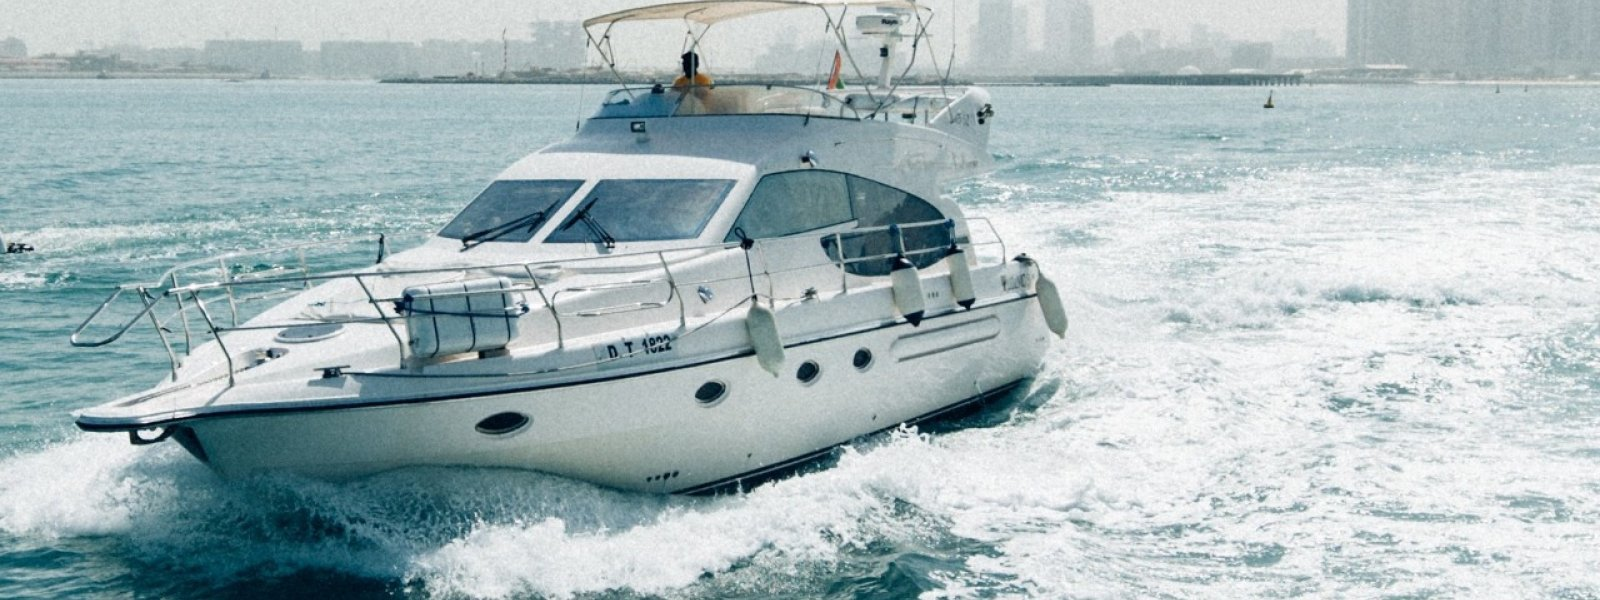 Cozmo 52 Feet Sea Breeze Yacht cruising near Burj-ul-arab